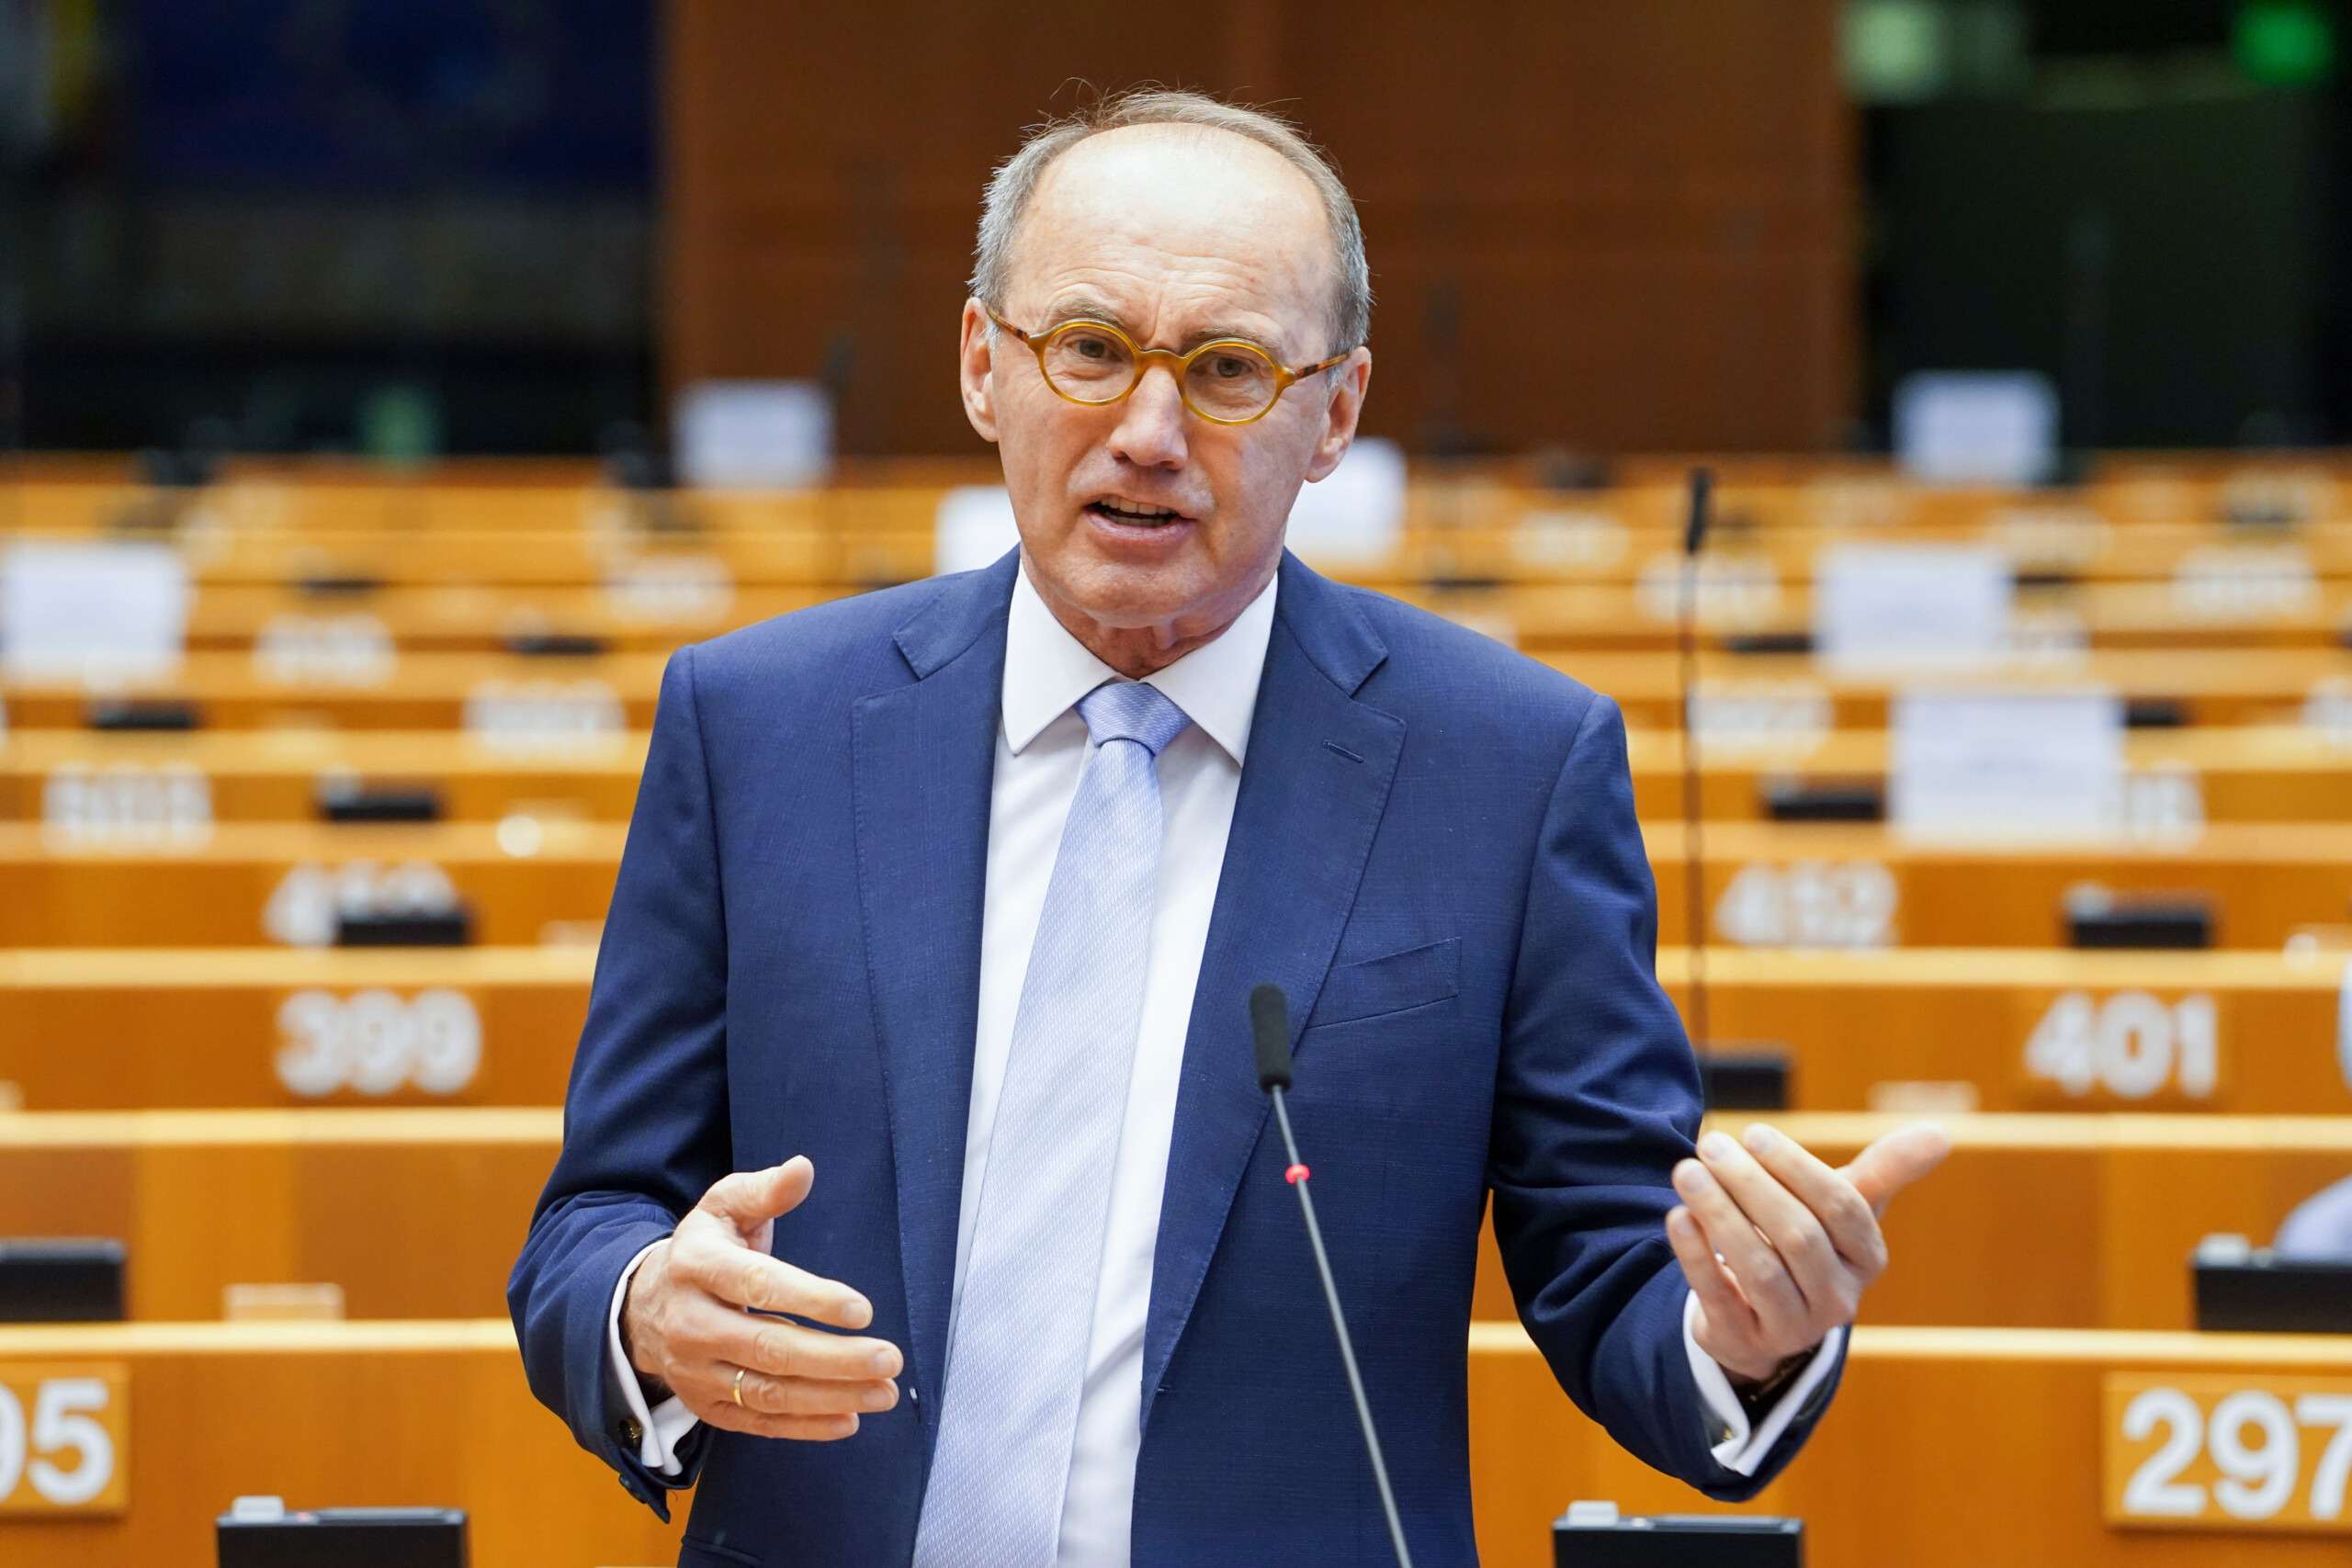 EP Plenary session - European Council and Commission statements - Conclusions of the extraordinary European Council meeting of 17-21 July 2020